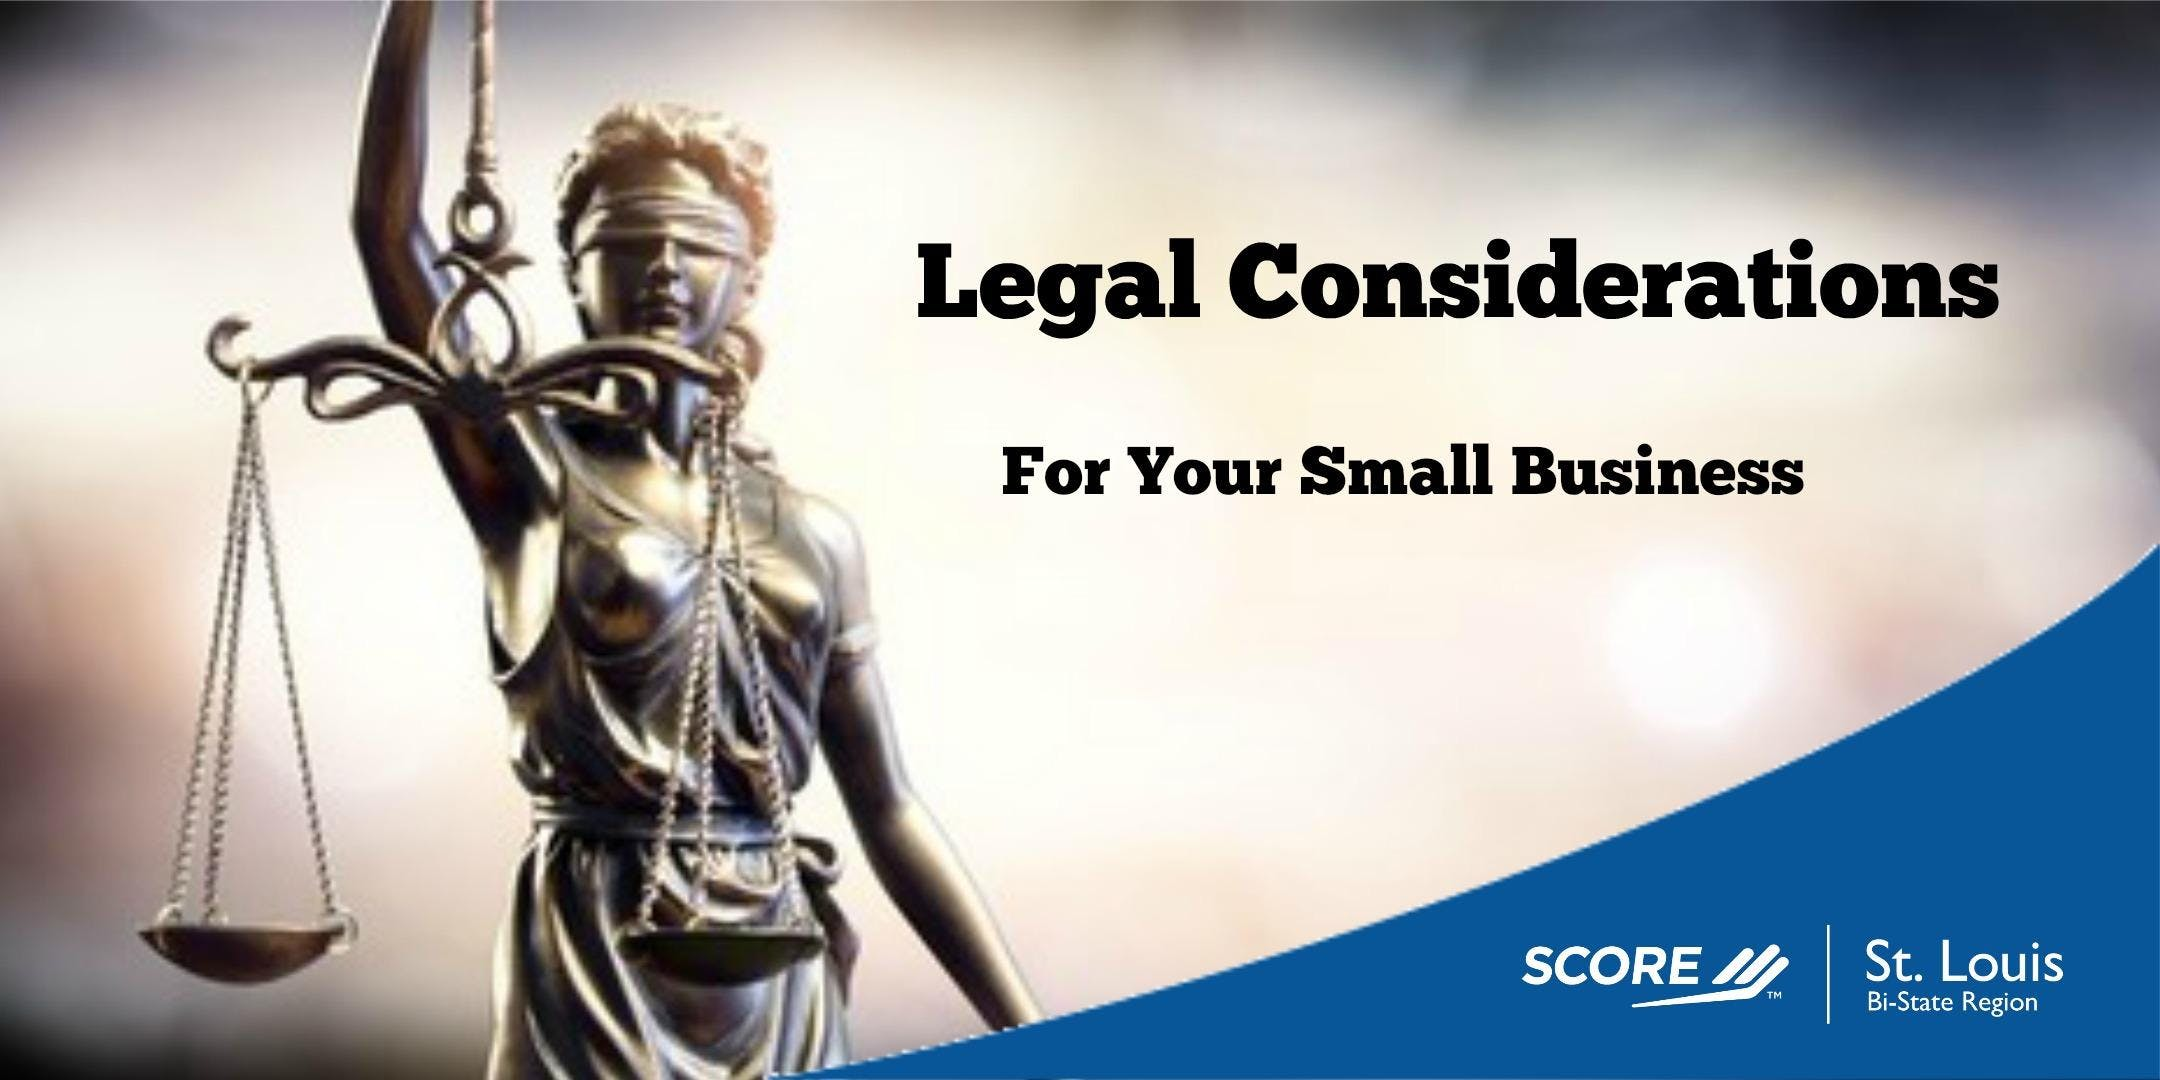 Legal Considerations for Small Business 06252